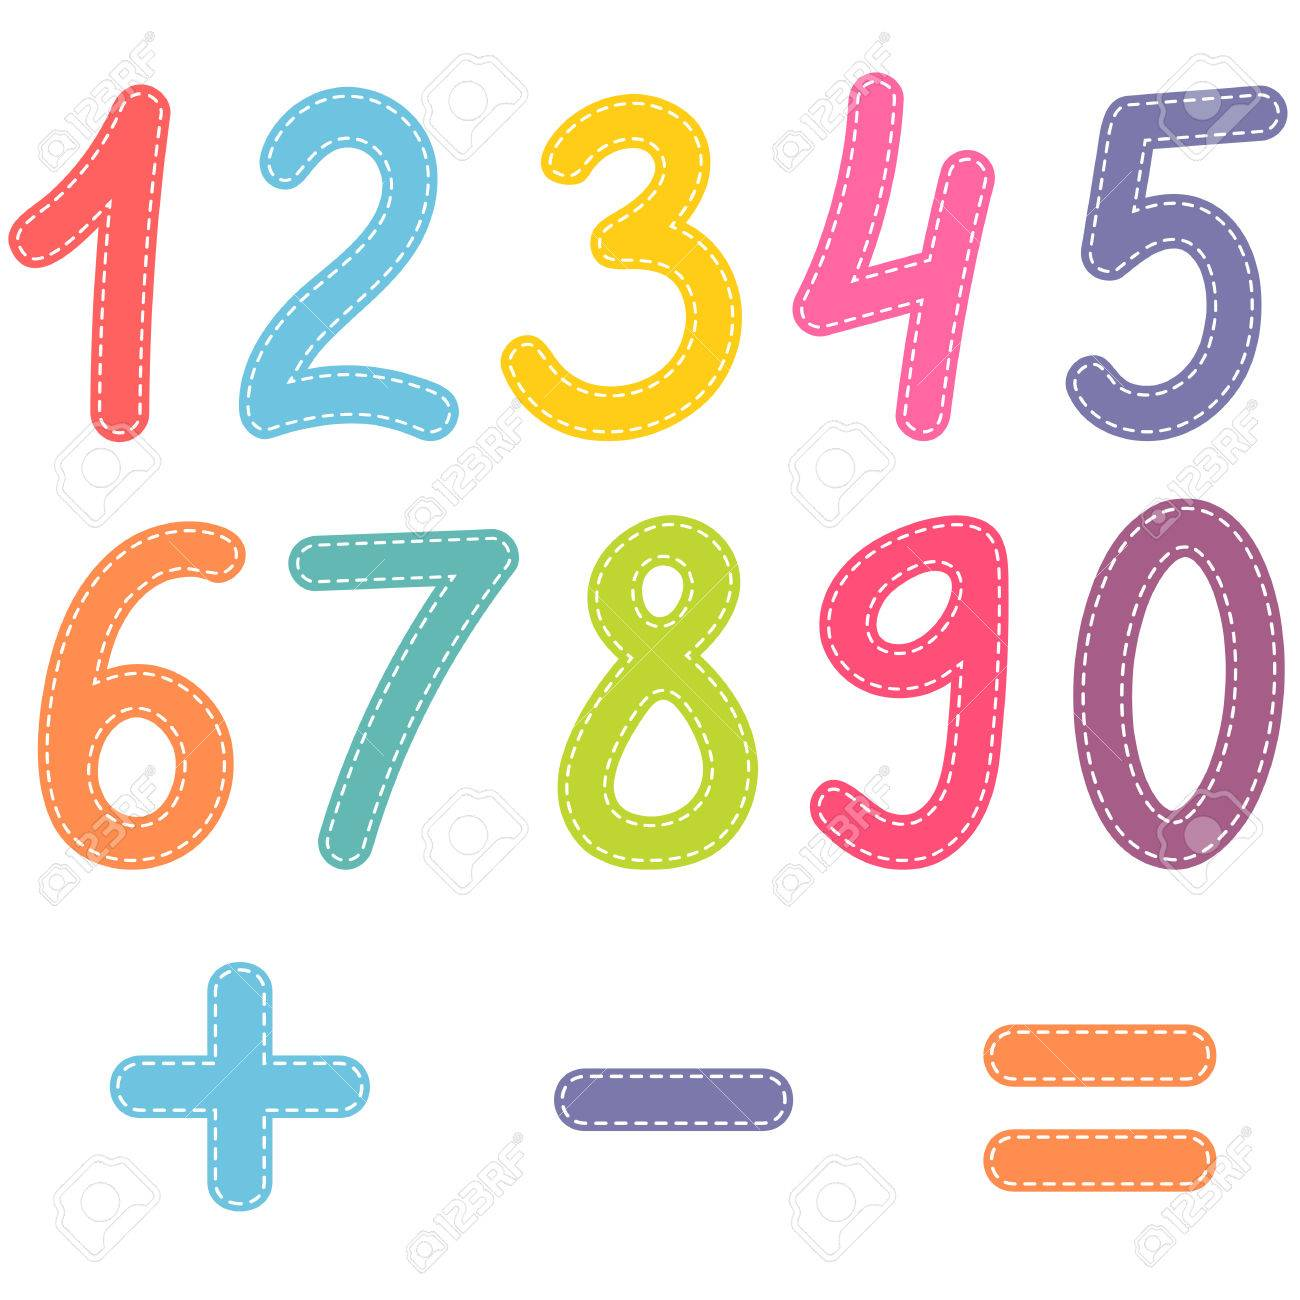 Numbers from zero to nine and math symbols royalty free cliparts numbers from zero to nine and math symbols stock vector 68188416 biocorpaavc Choice Image